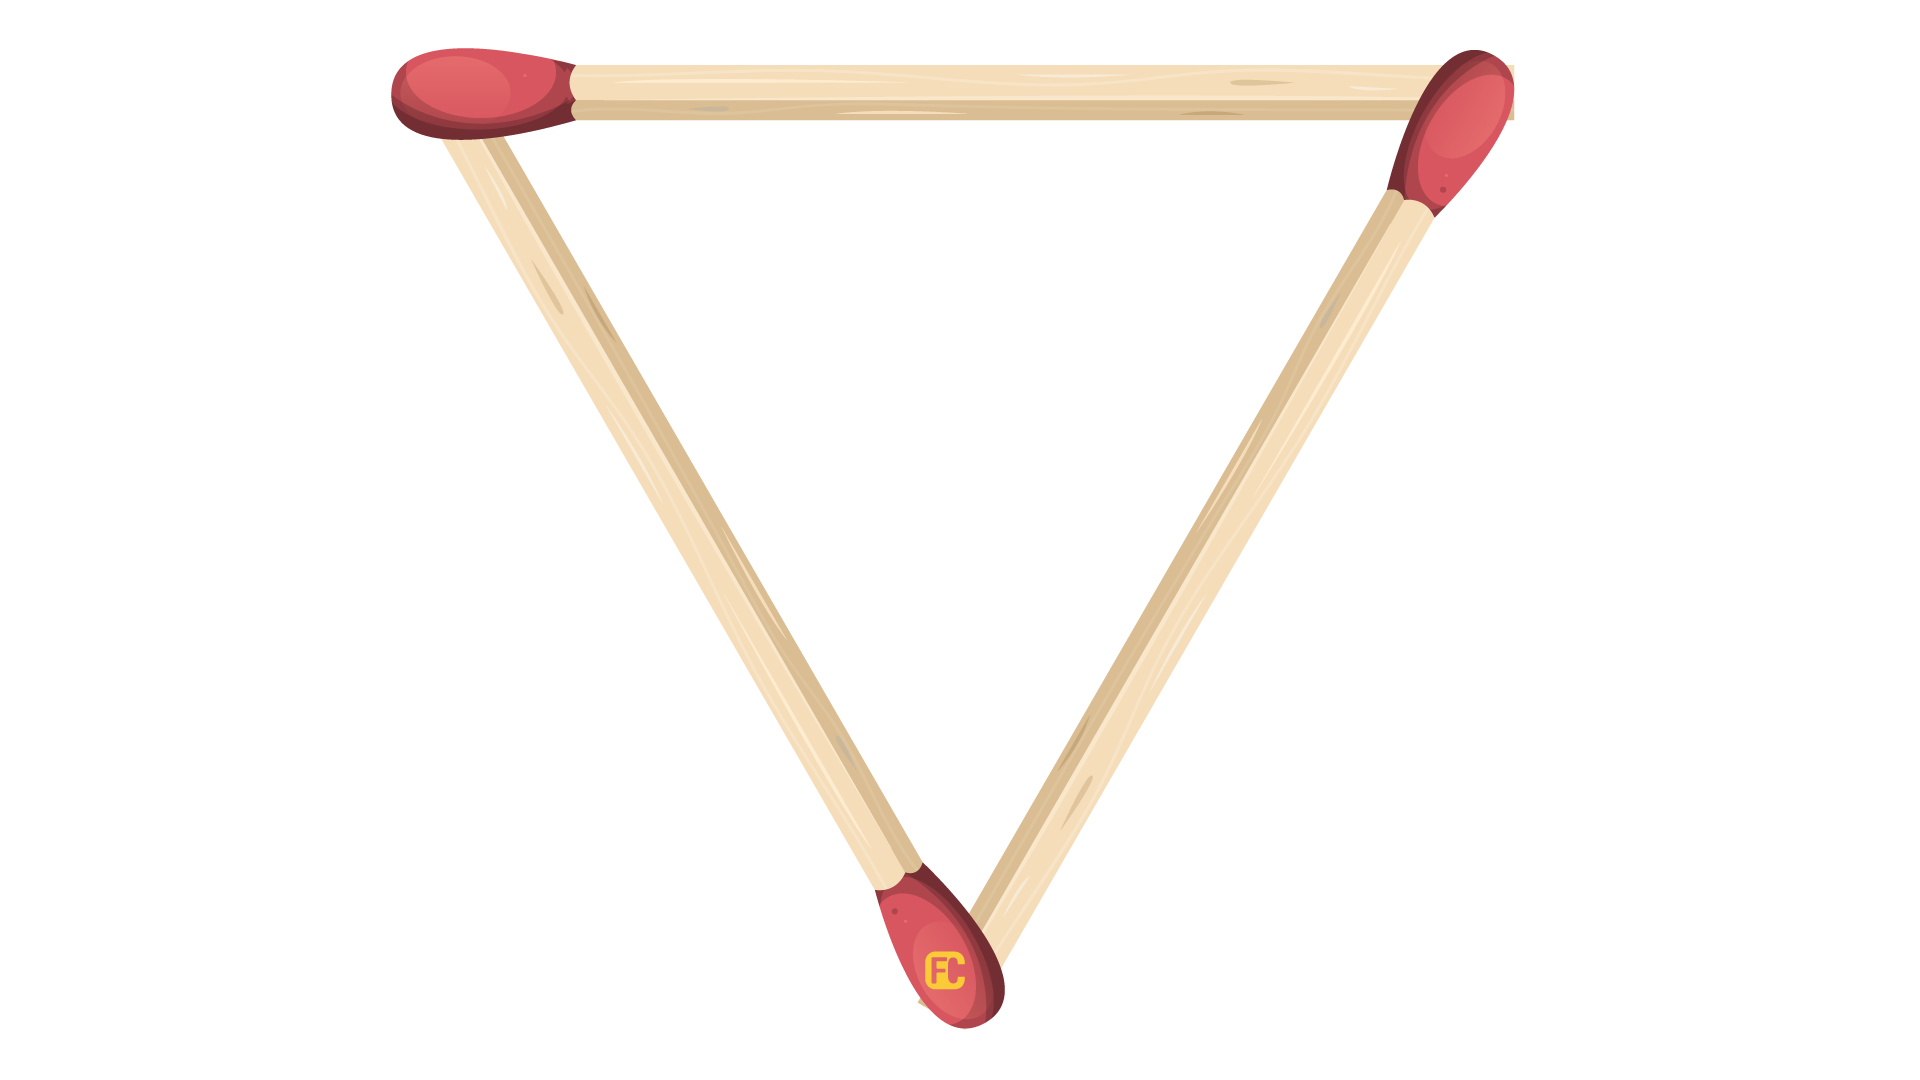 Triangle from matches